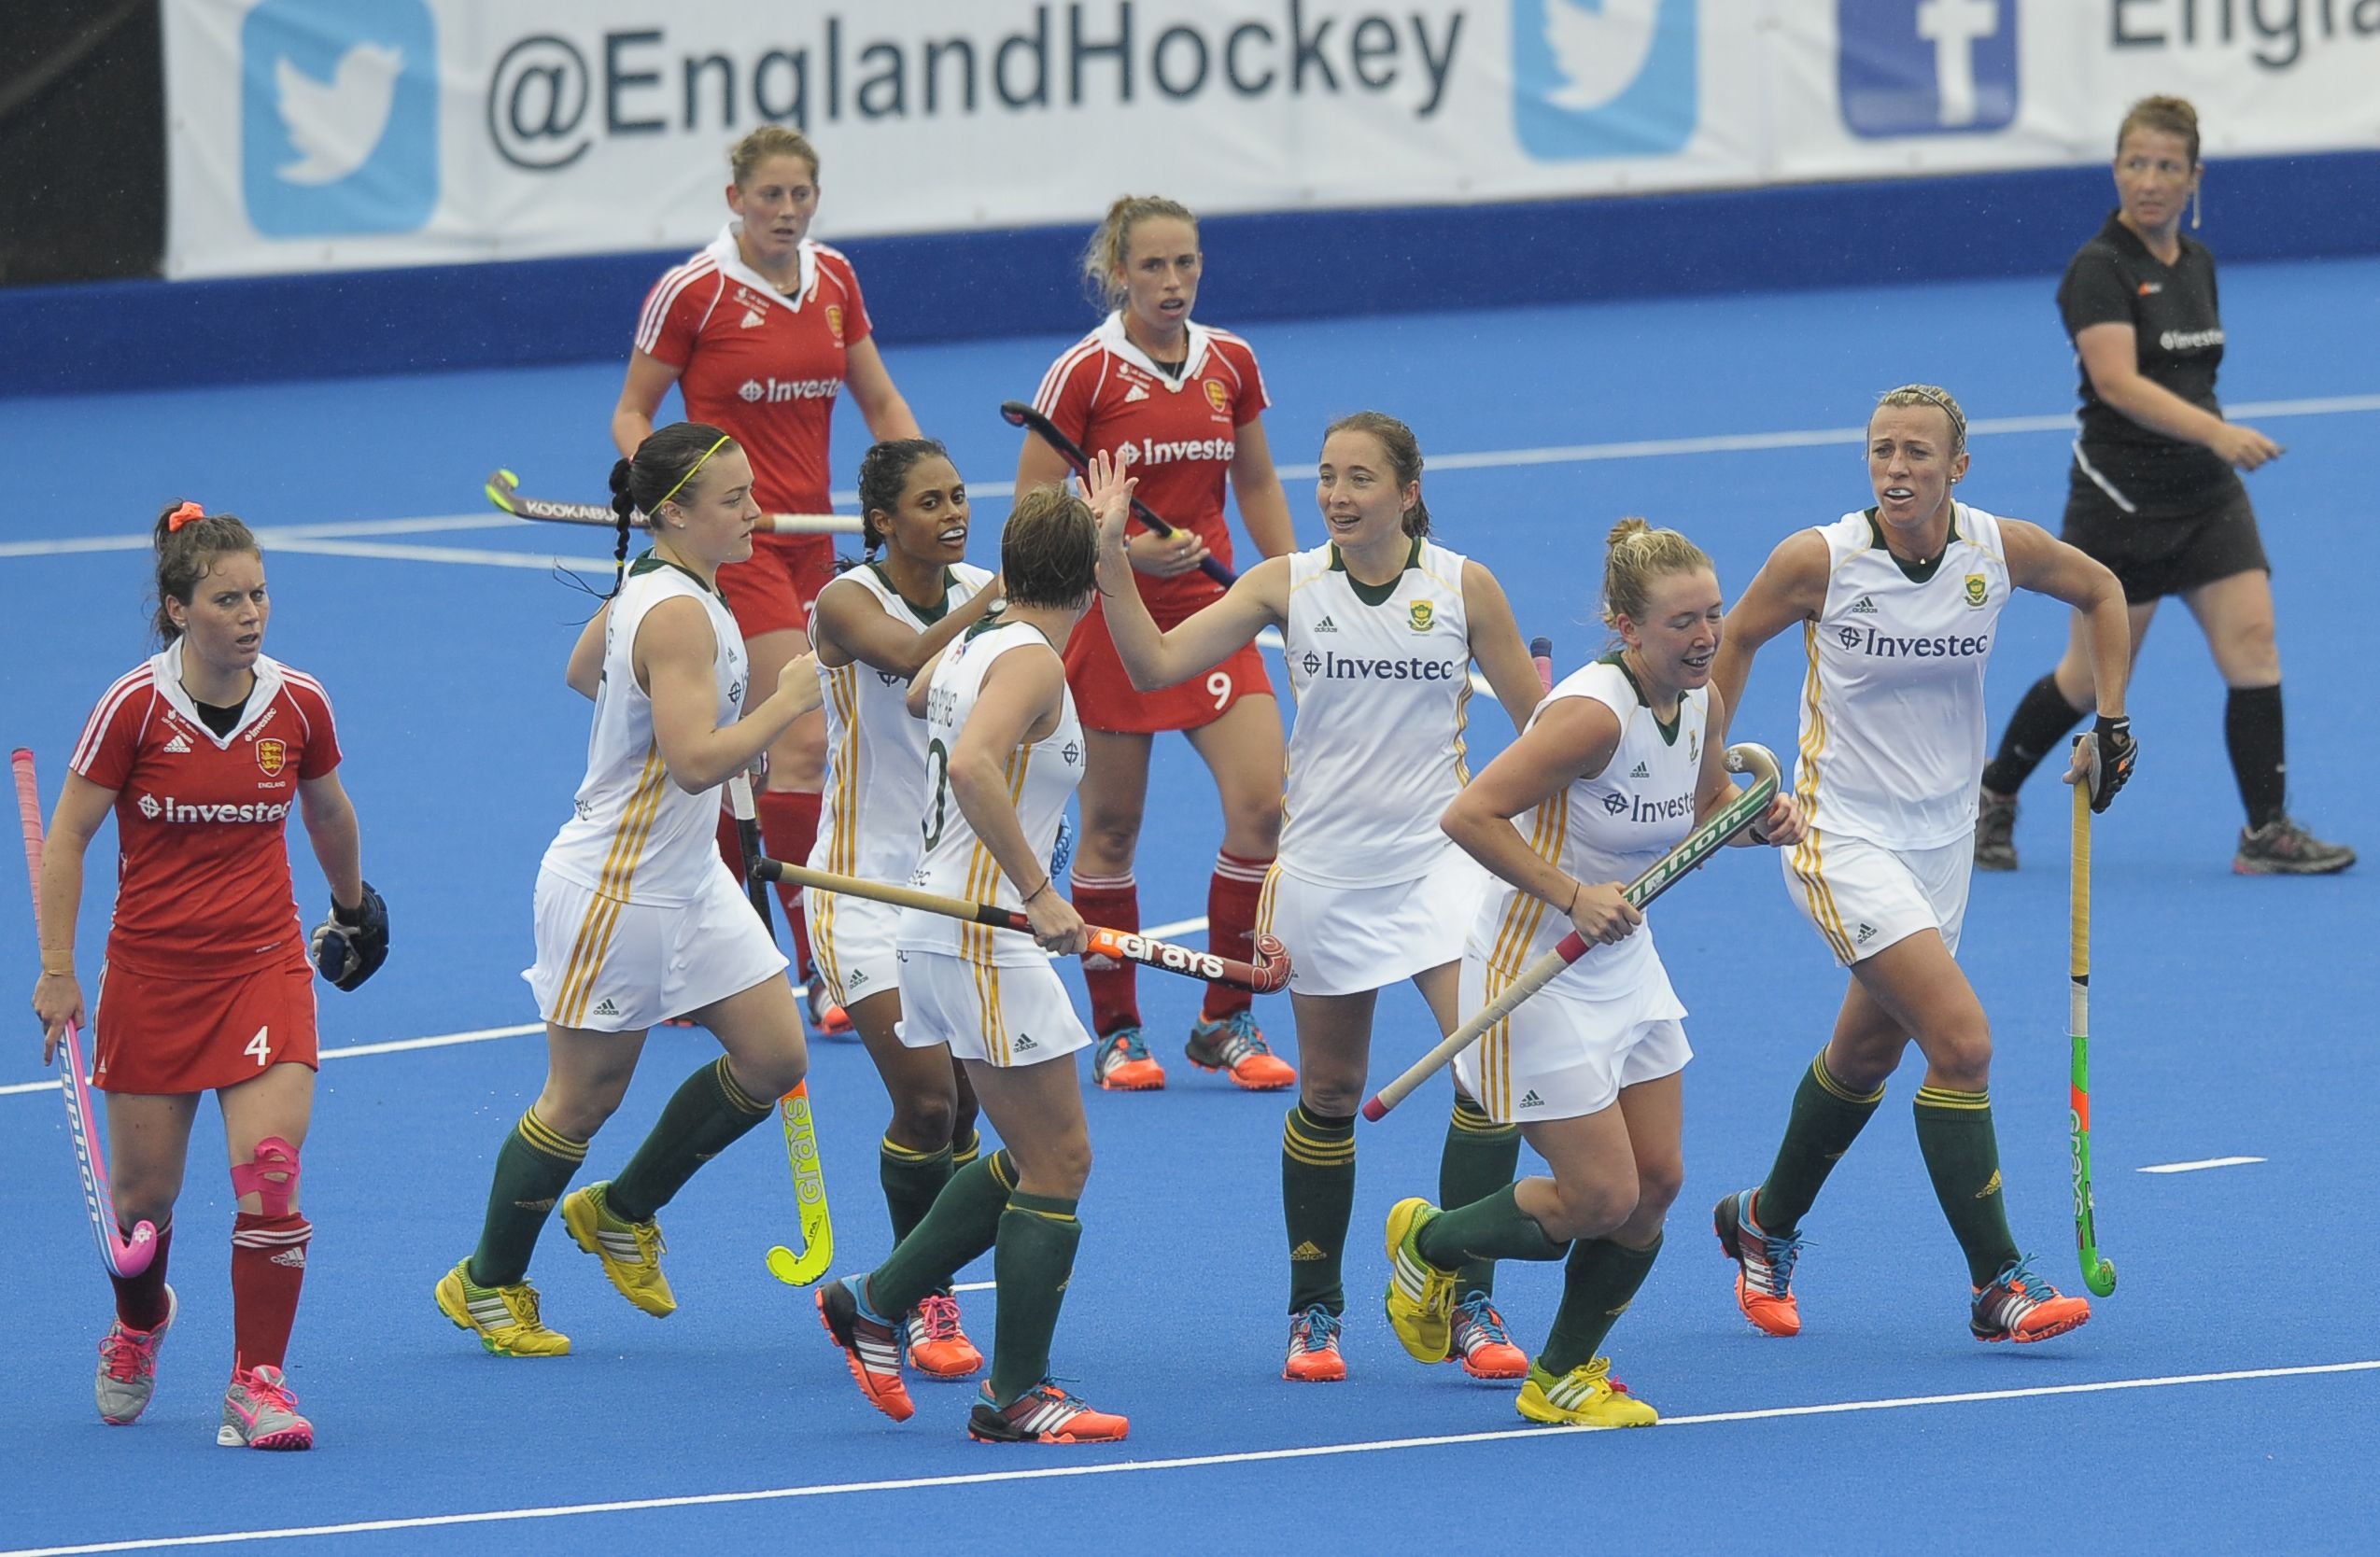 Hockey sides in double defeat to England in London